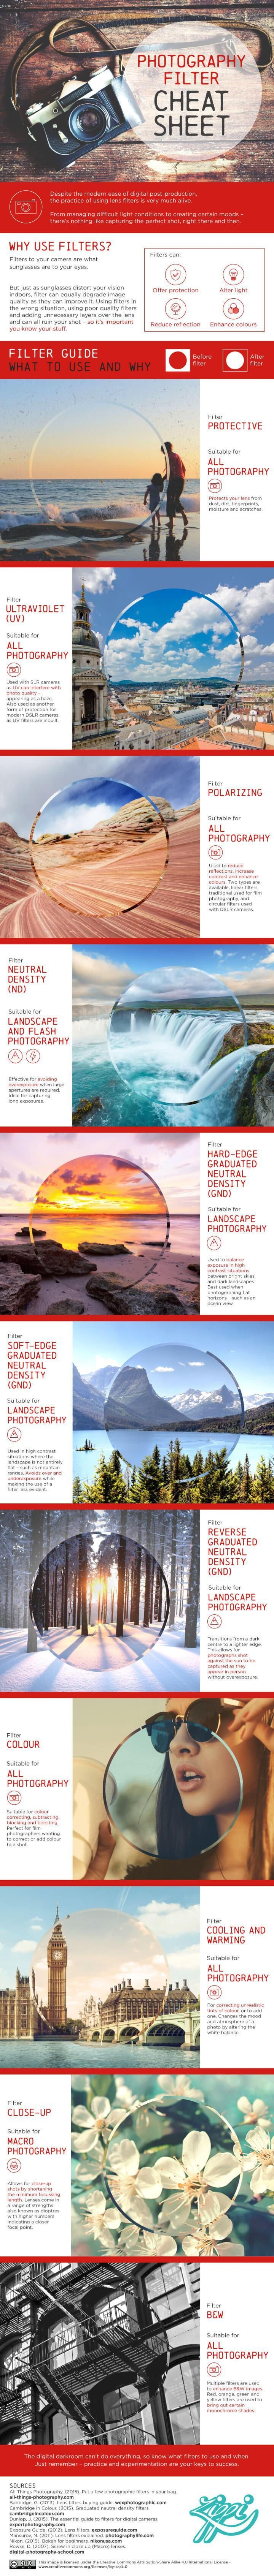 Take Pro Holiday Pics With This Photography Filter Cheat Sheet [INFOGRAPHIC] - Whether you're interested in travel photography or the documentation of your adorable dog's daily grind, the tips and tricks in this photography filter cheat sheet are going to rock your world.